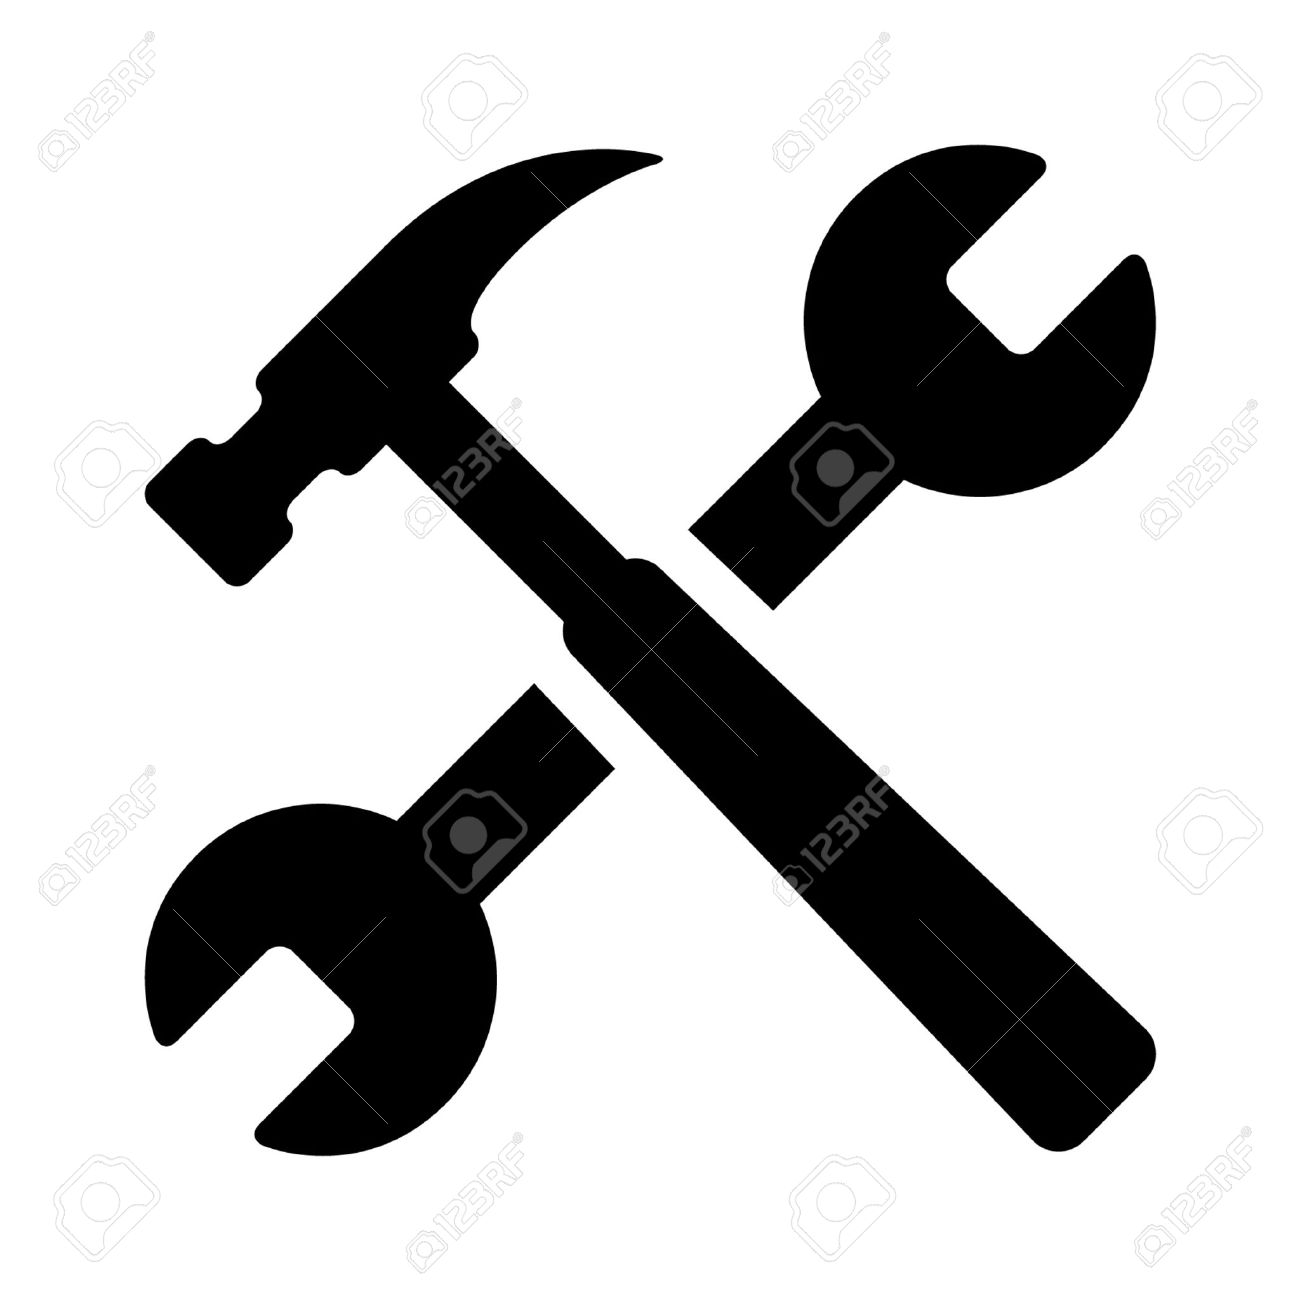 Hammer And Wrench Repair Tools Flat Icon For Apps Royalty Free